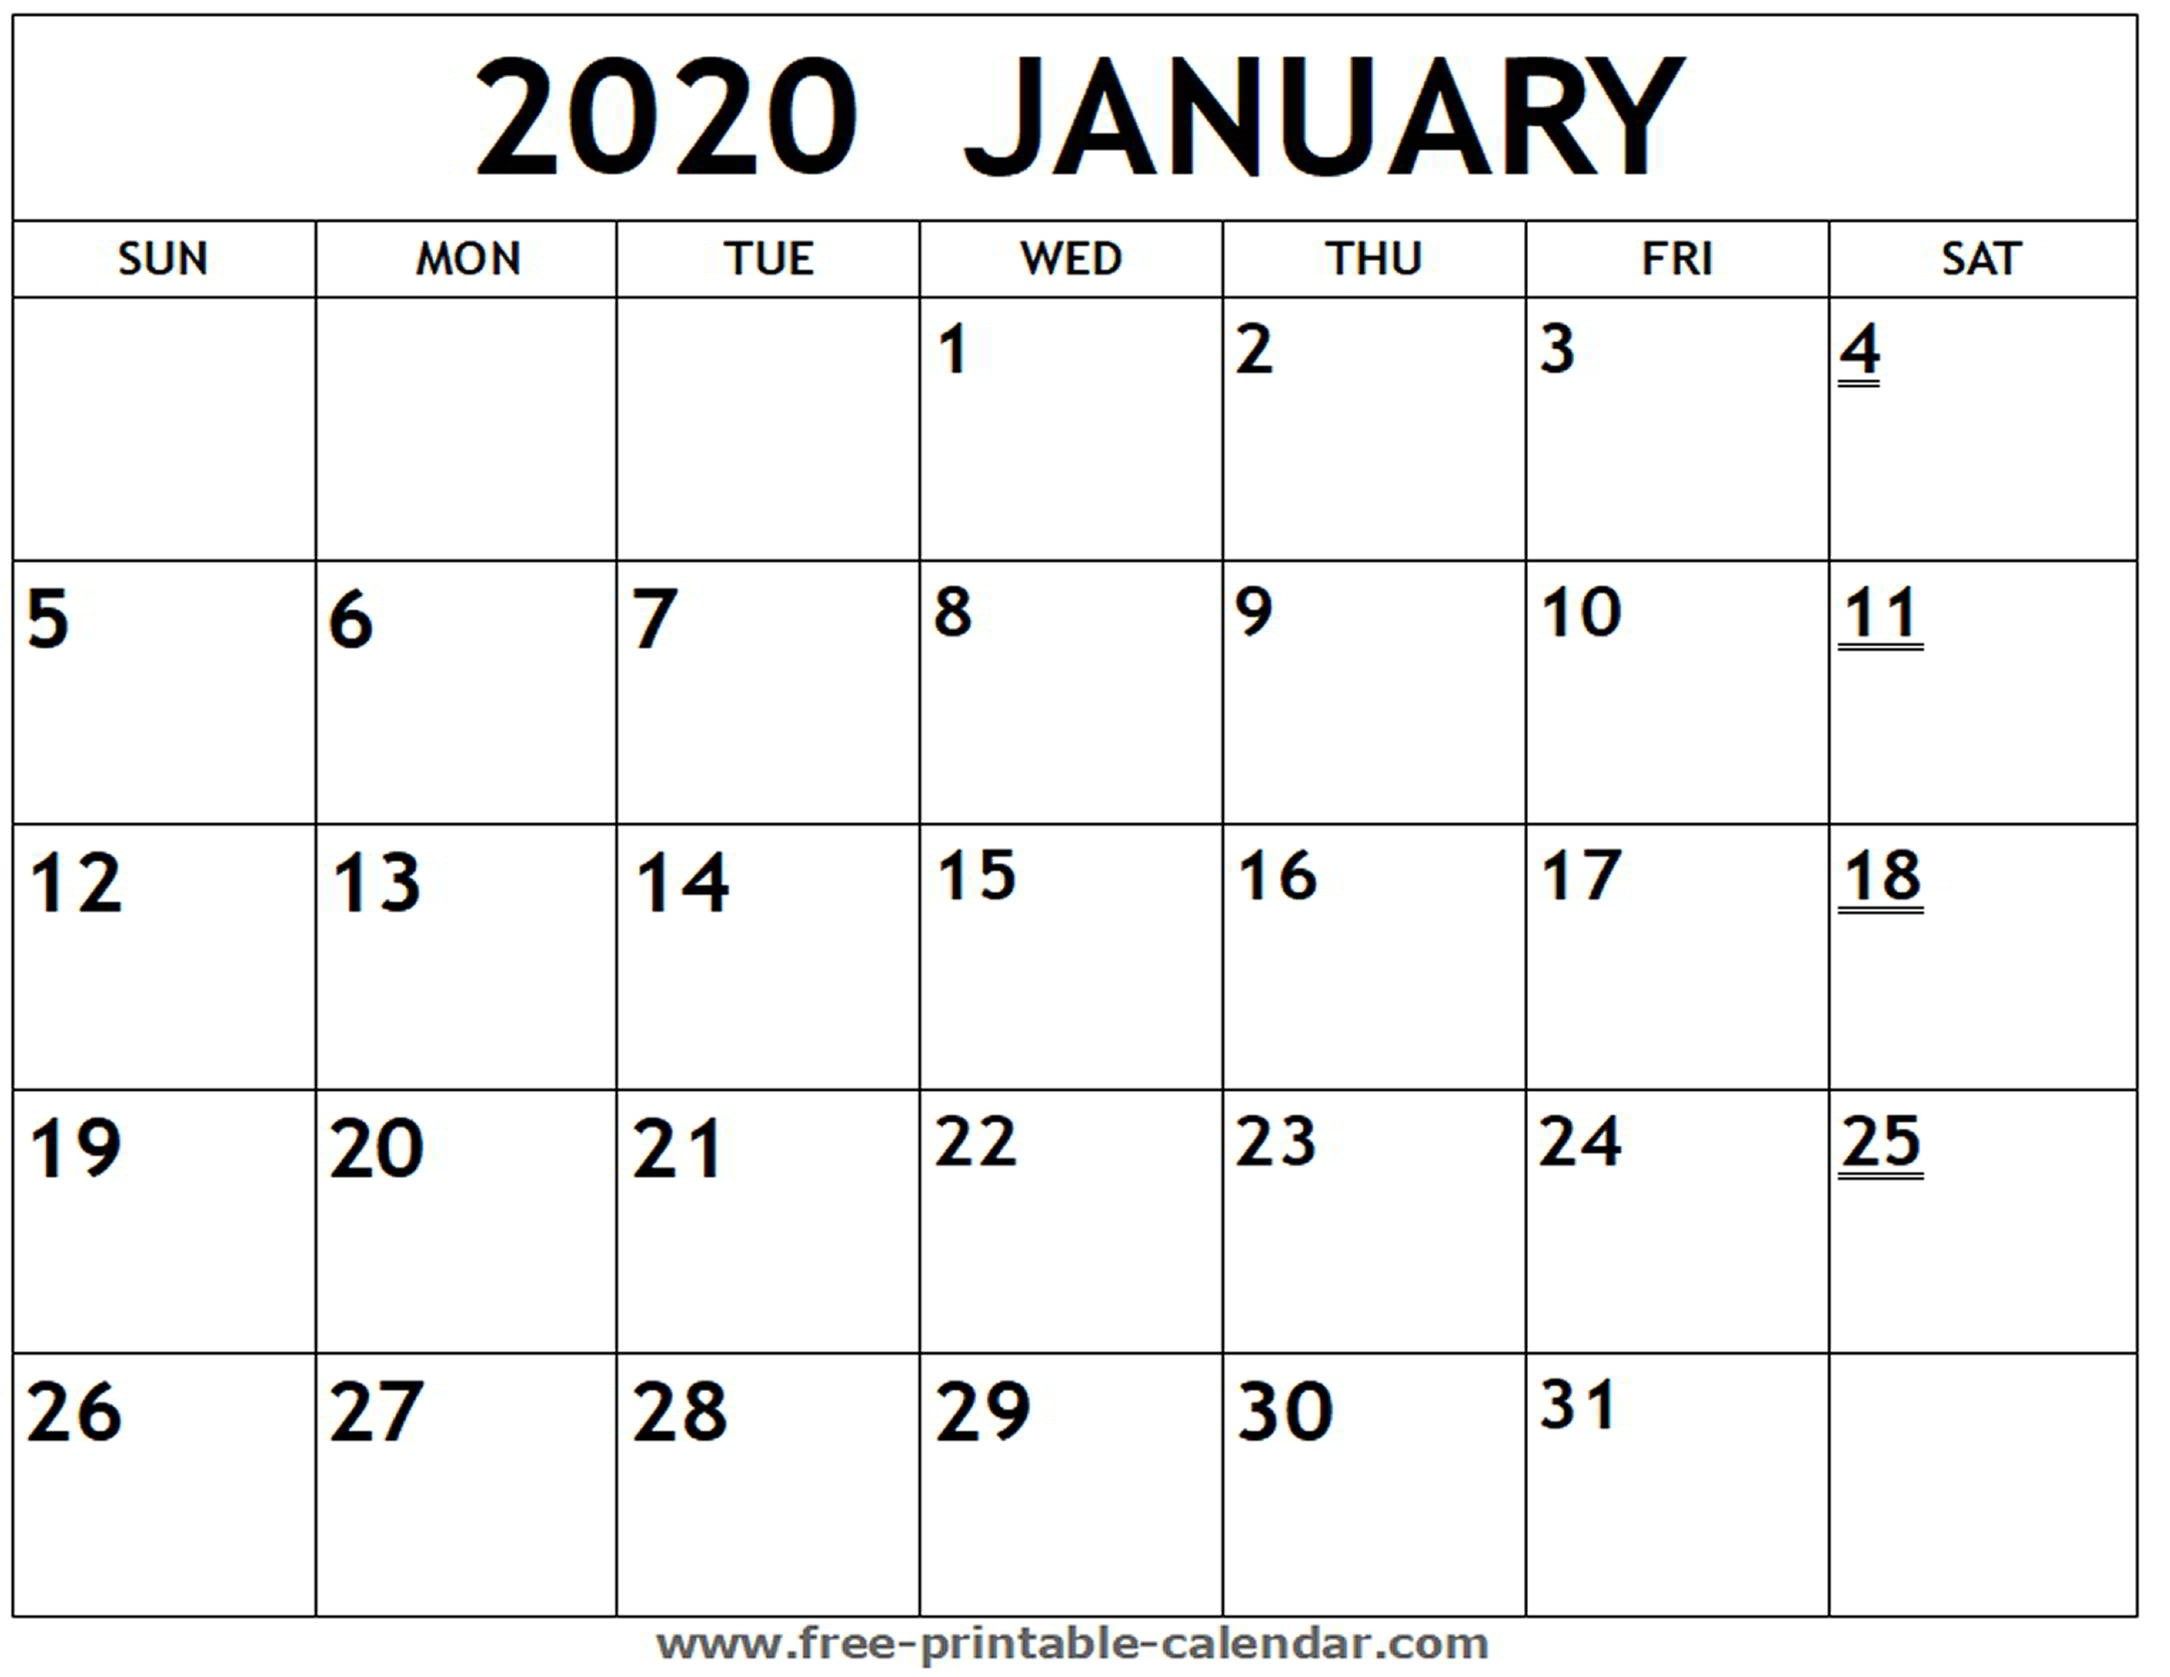 Free Printable Calendar 2020 Monthly - Wpa.wpart.co-Free Printable Calendar 2020 Bill Paying Monthly